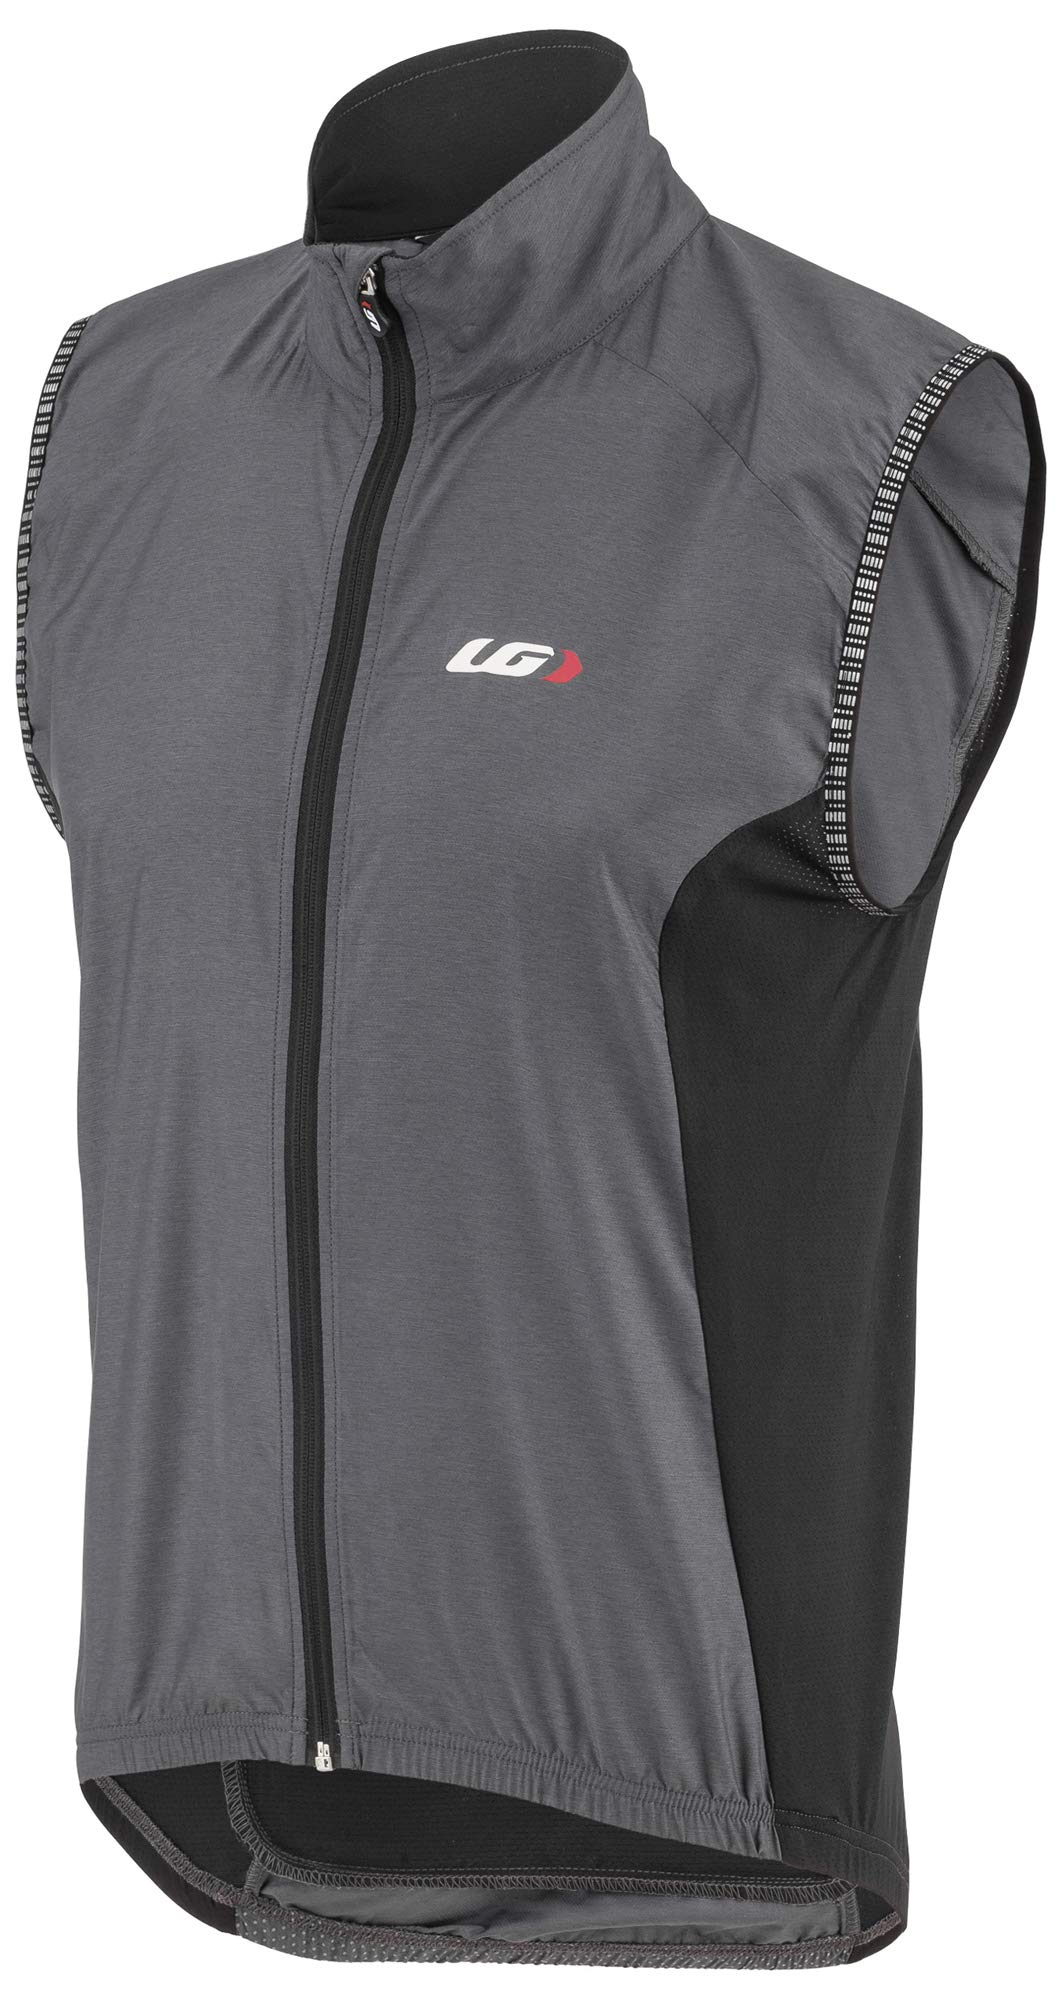 Louis Garneau Men's Nova 2 Bike Vest, Gray/Black, Medium by Louis Garneau